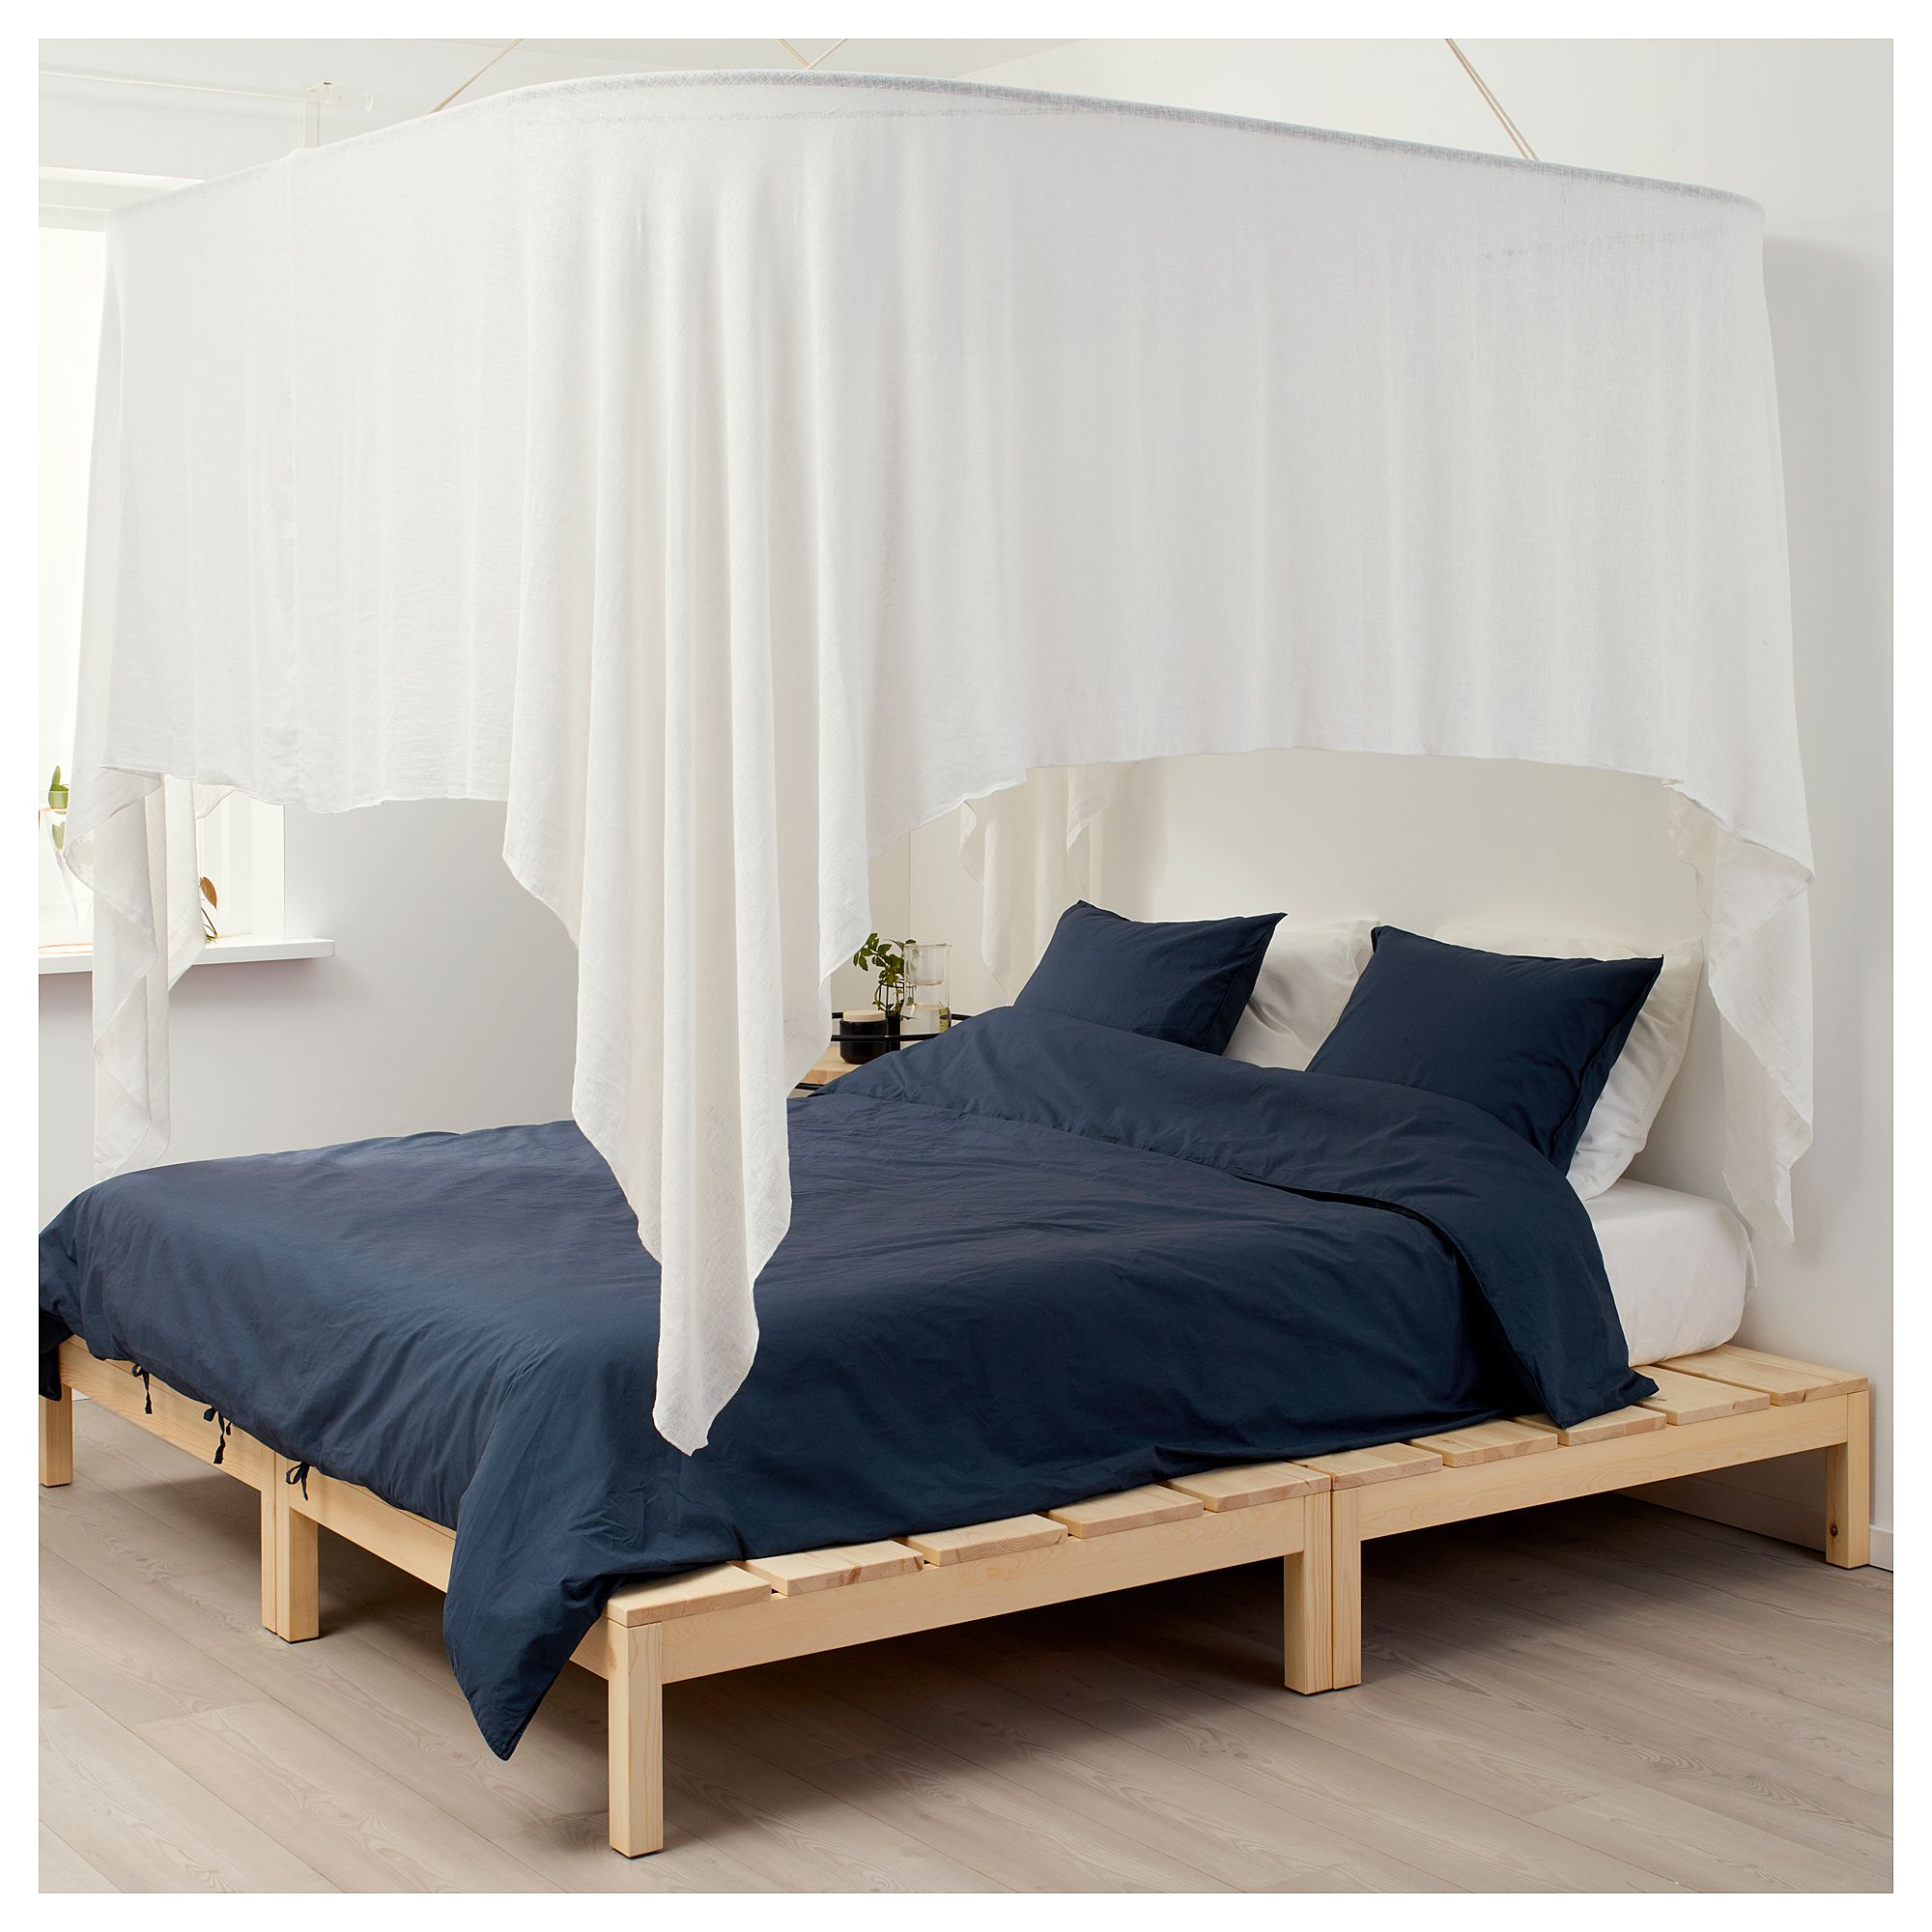 Ikea Us Furniture And Home Furnishings Ikea Canopy Bed Ikea